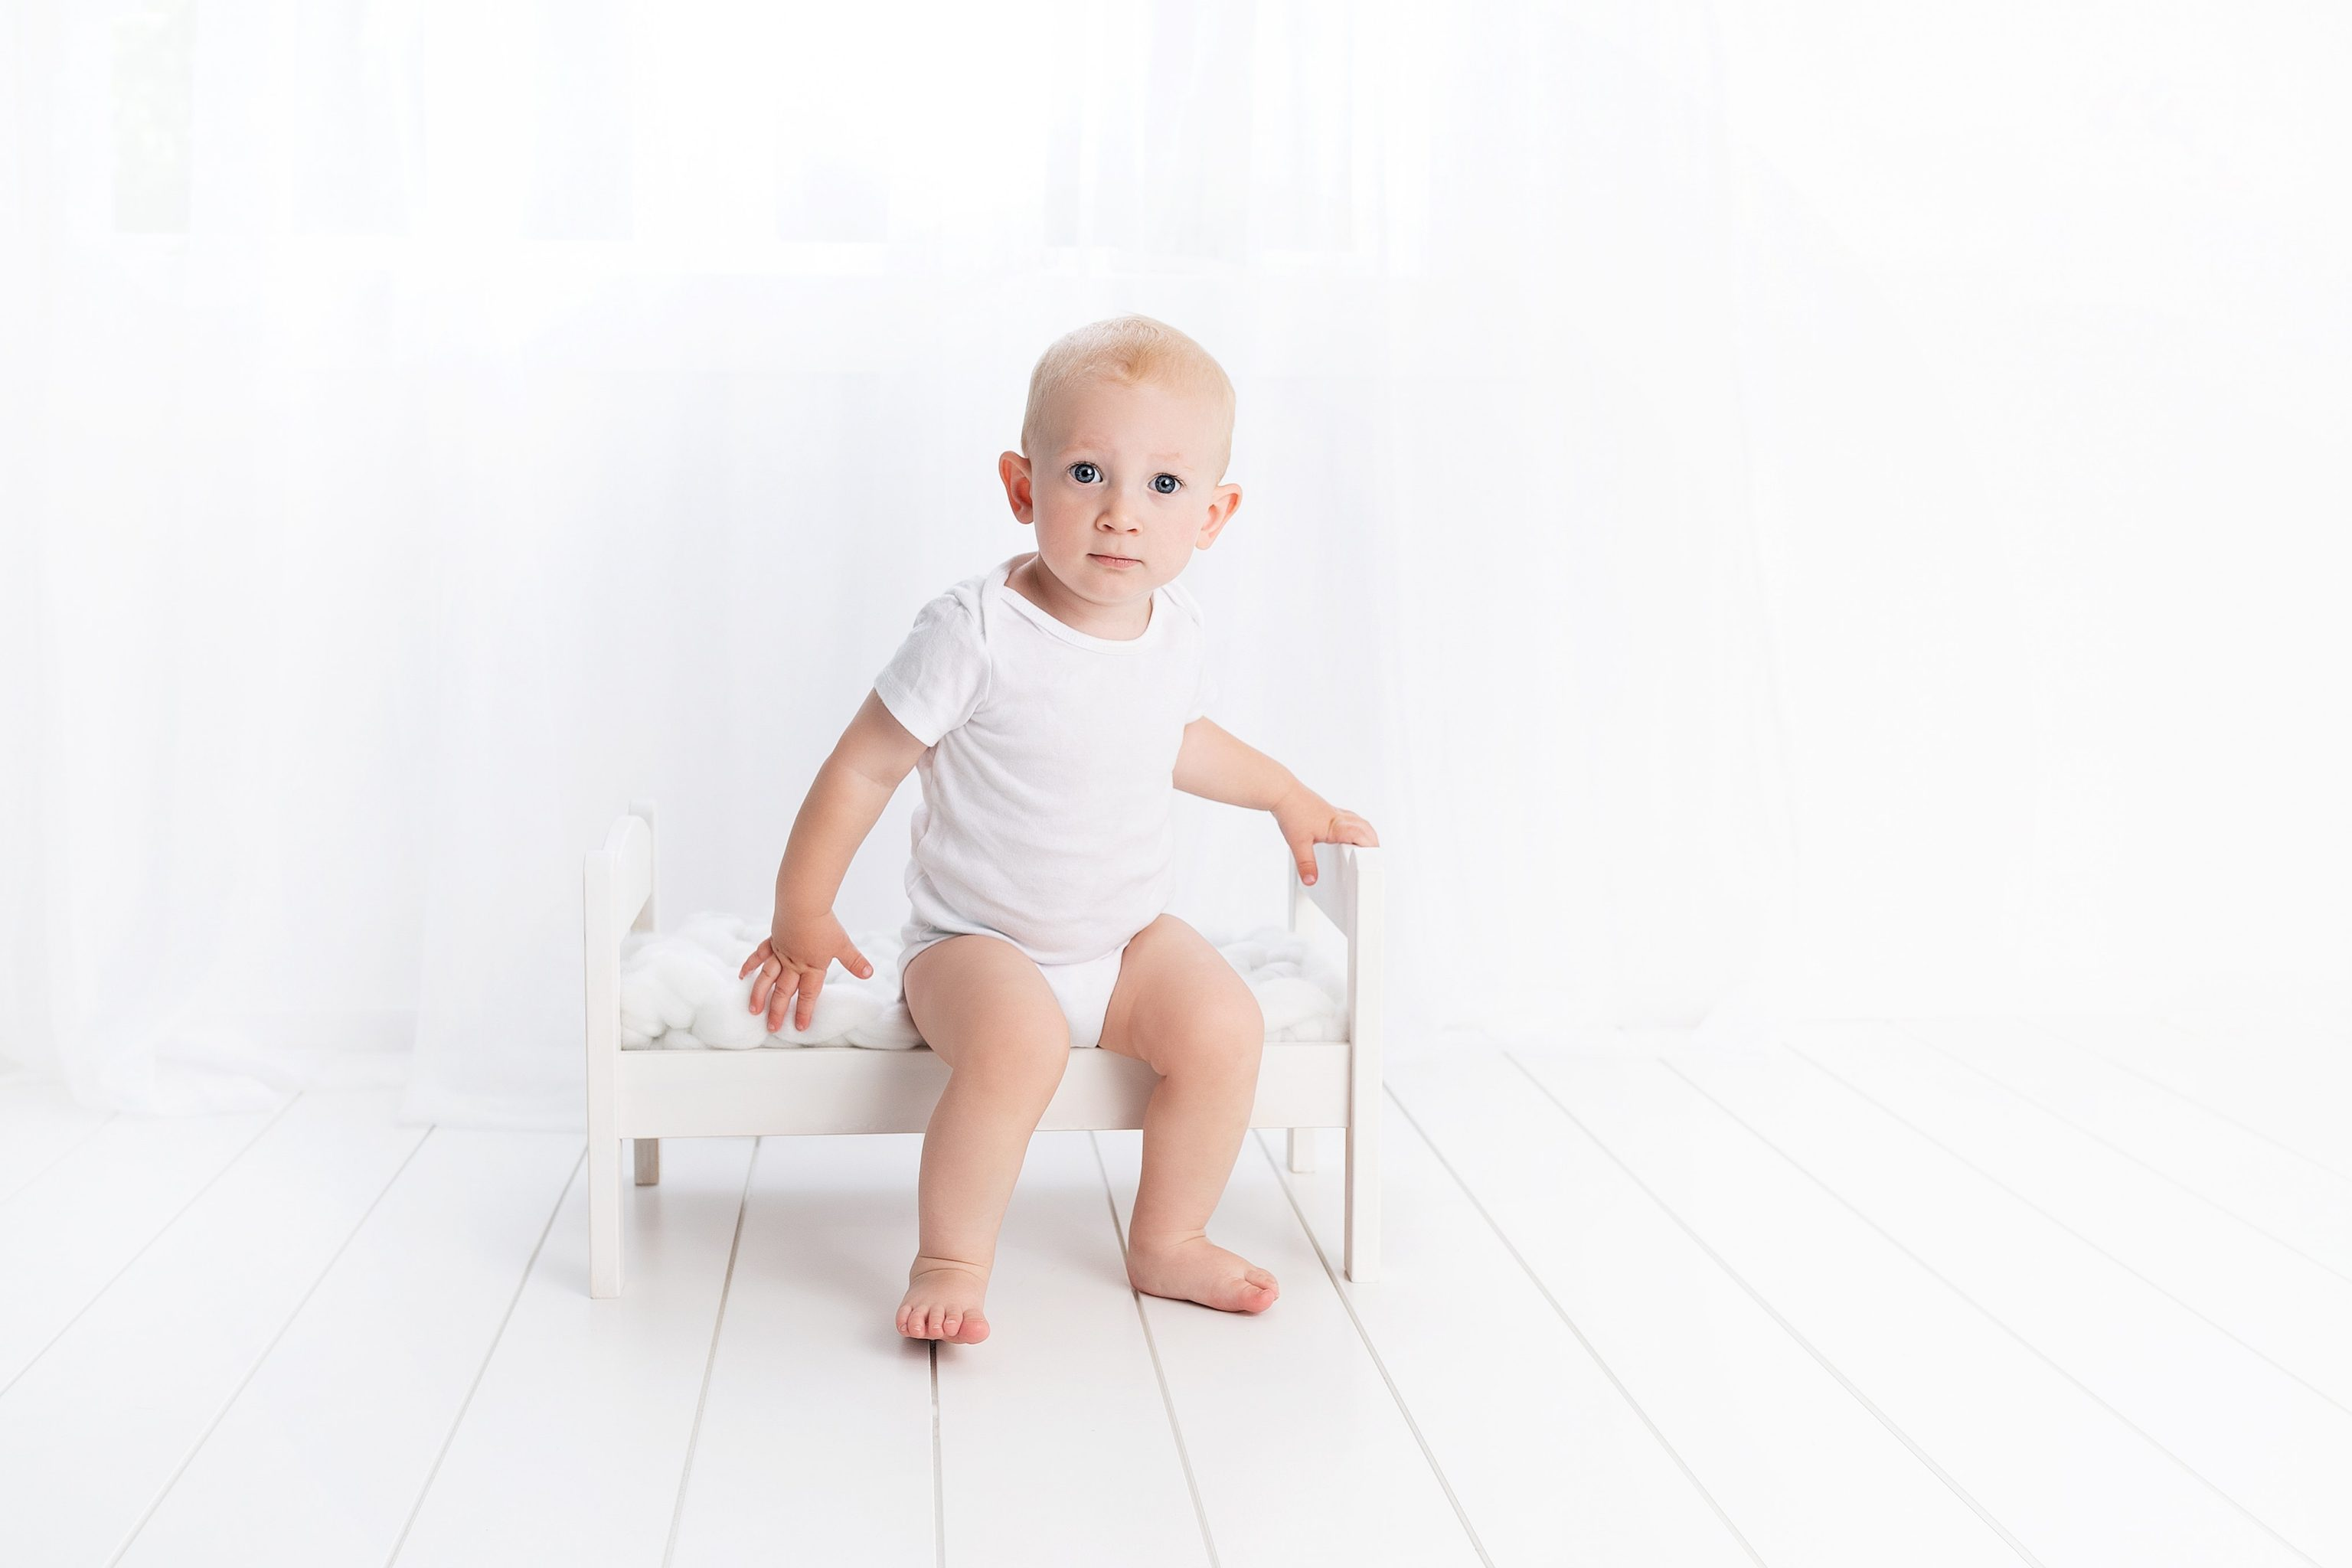 Can Potty Training At Night Success Be Guaranteed?